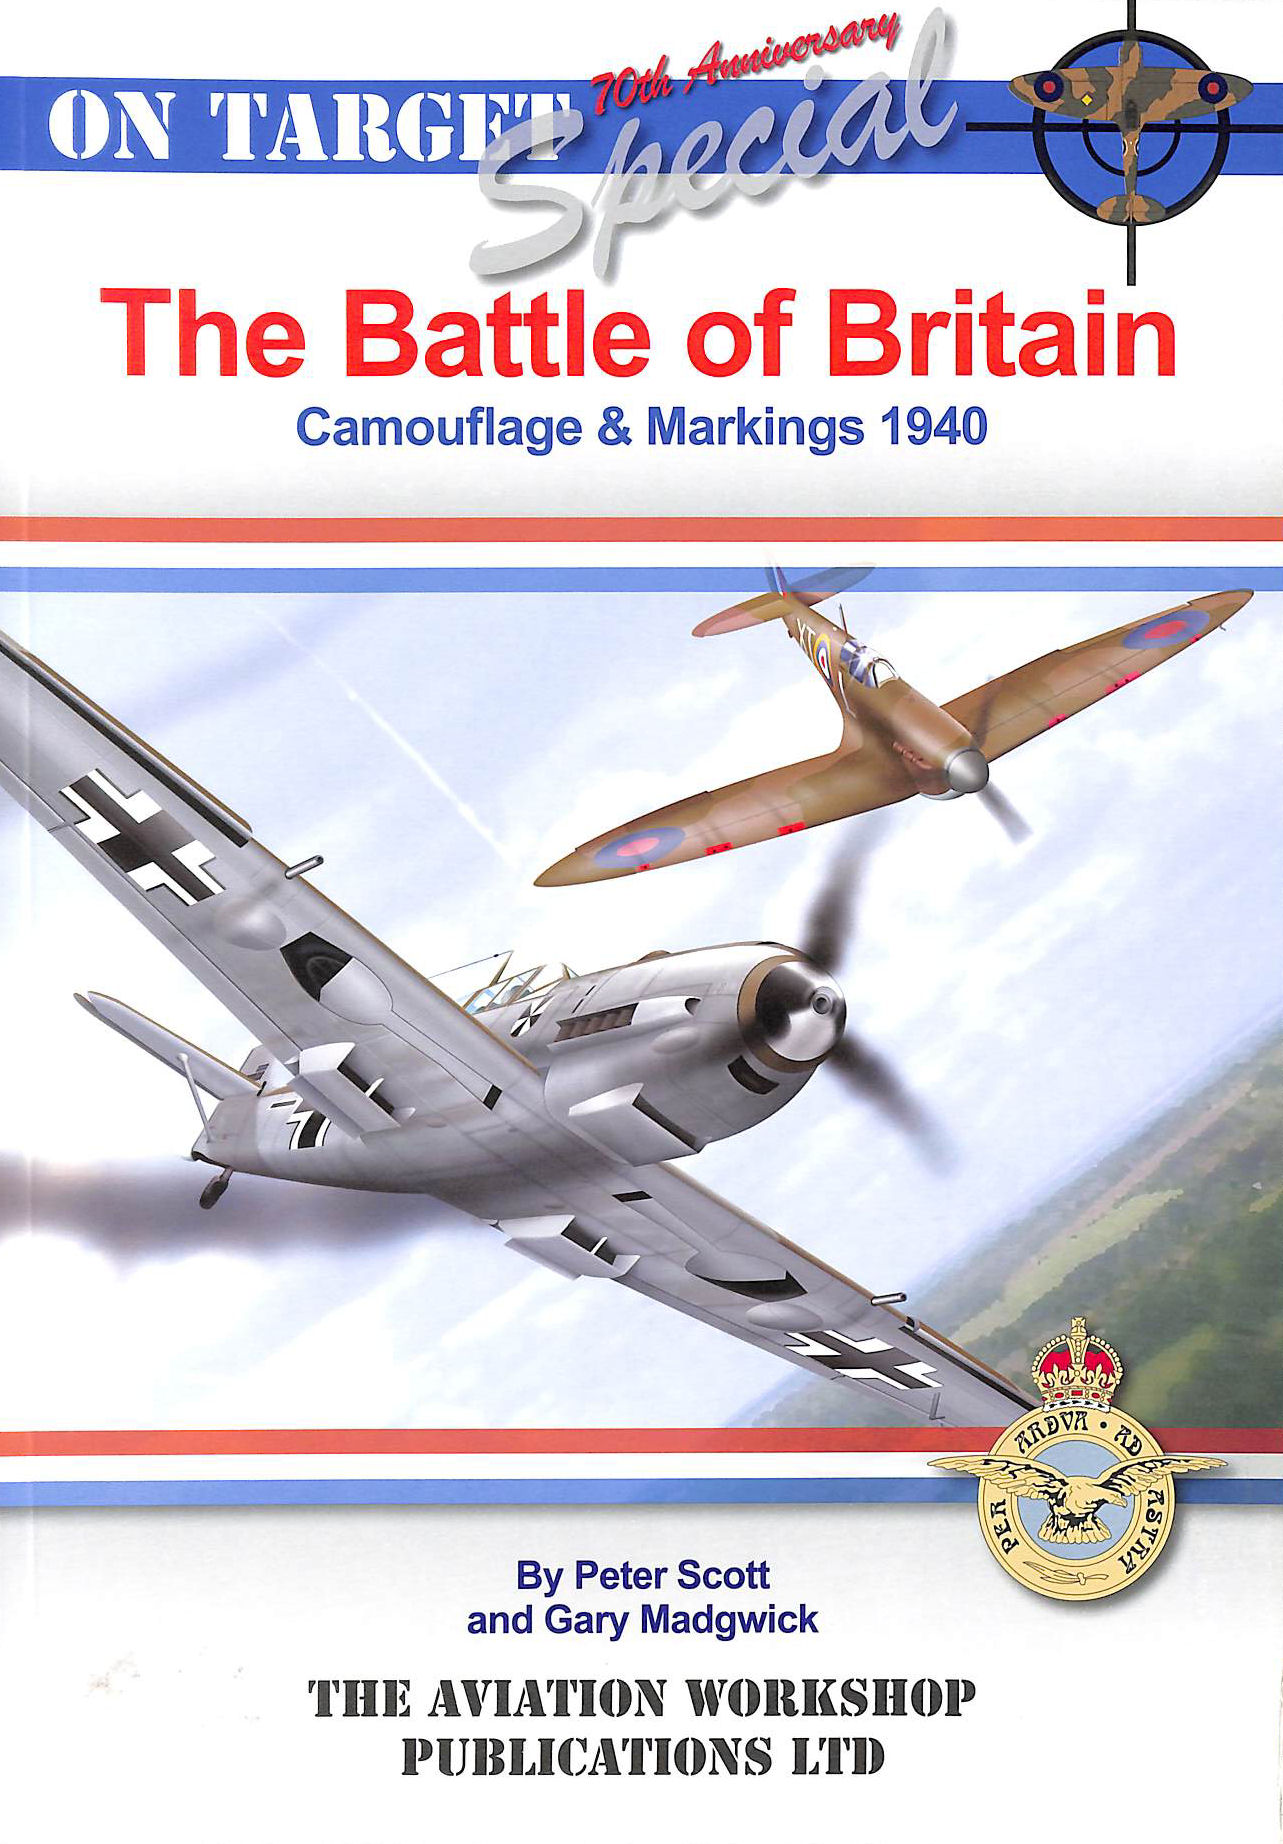 Image for Battle Of Britain: Camouflage & Markings 1940 (On Target 70Th Anniversary Special)